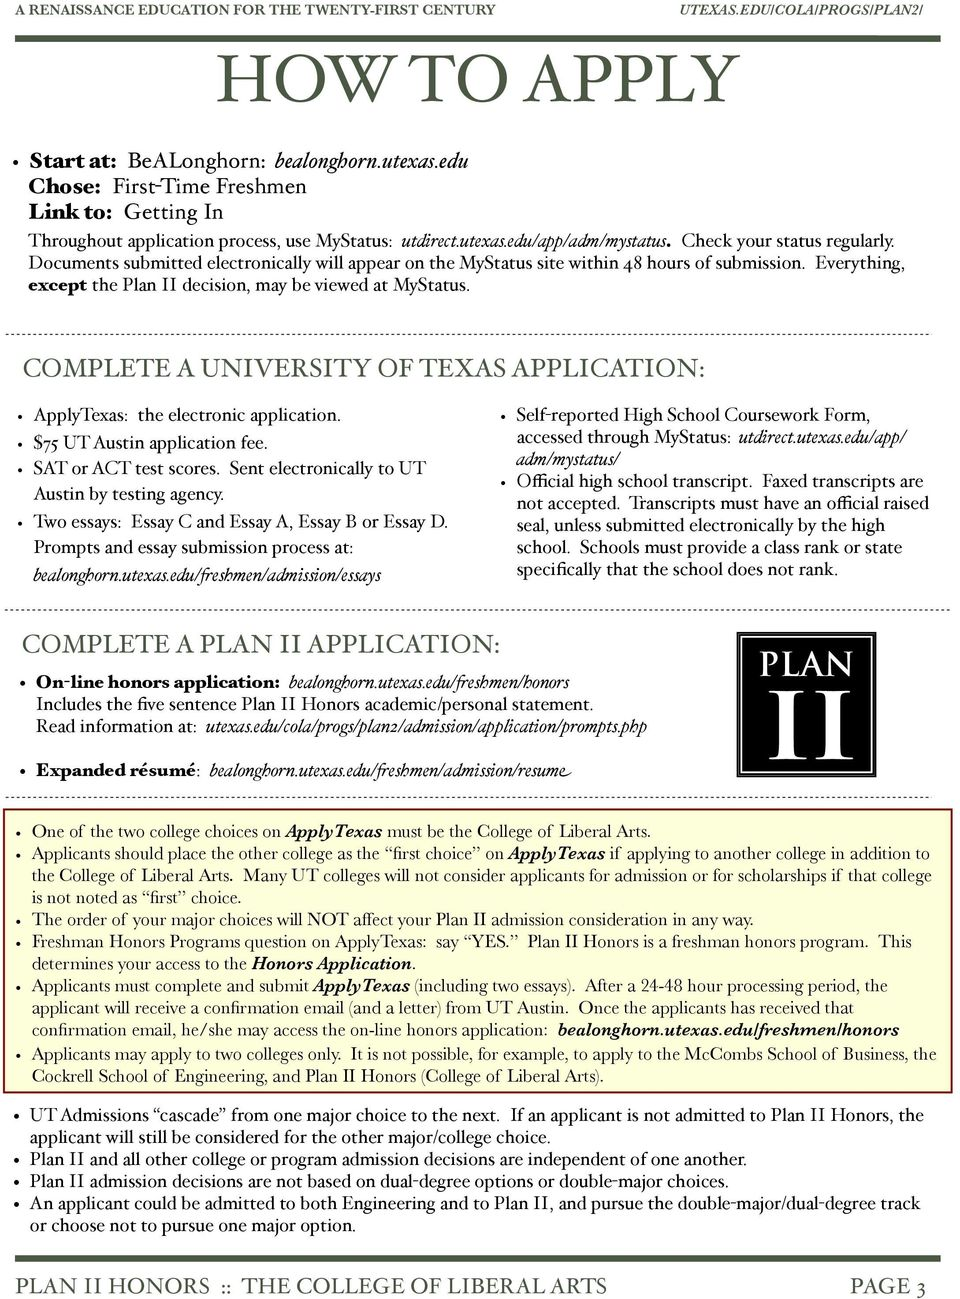 005 Essay Example Fsu Application College Texas Admission P Examples Florida State Remarkable Full